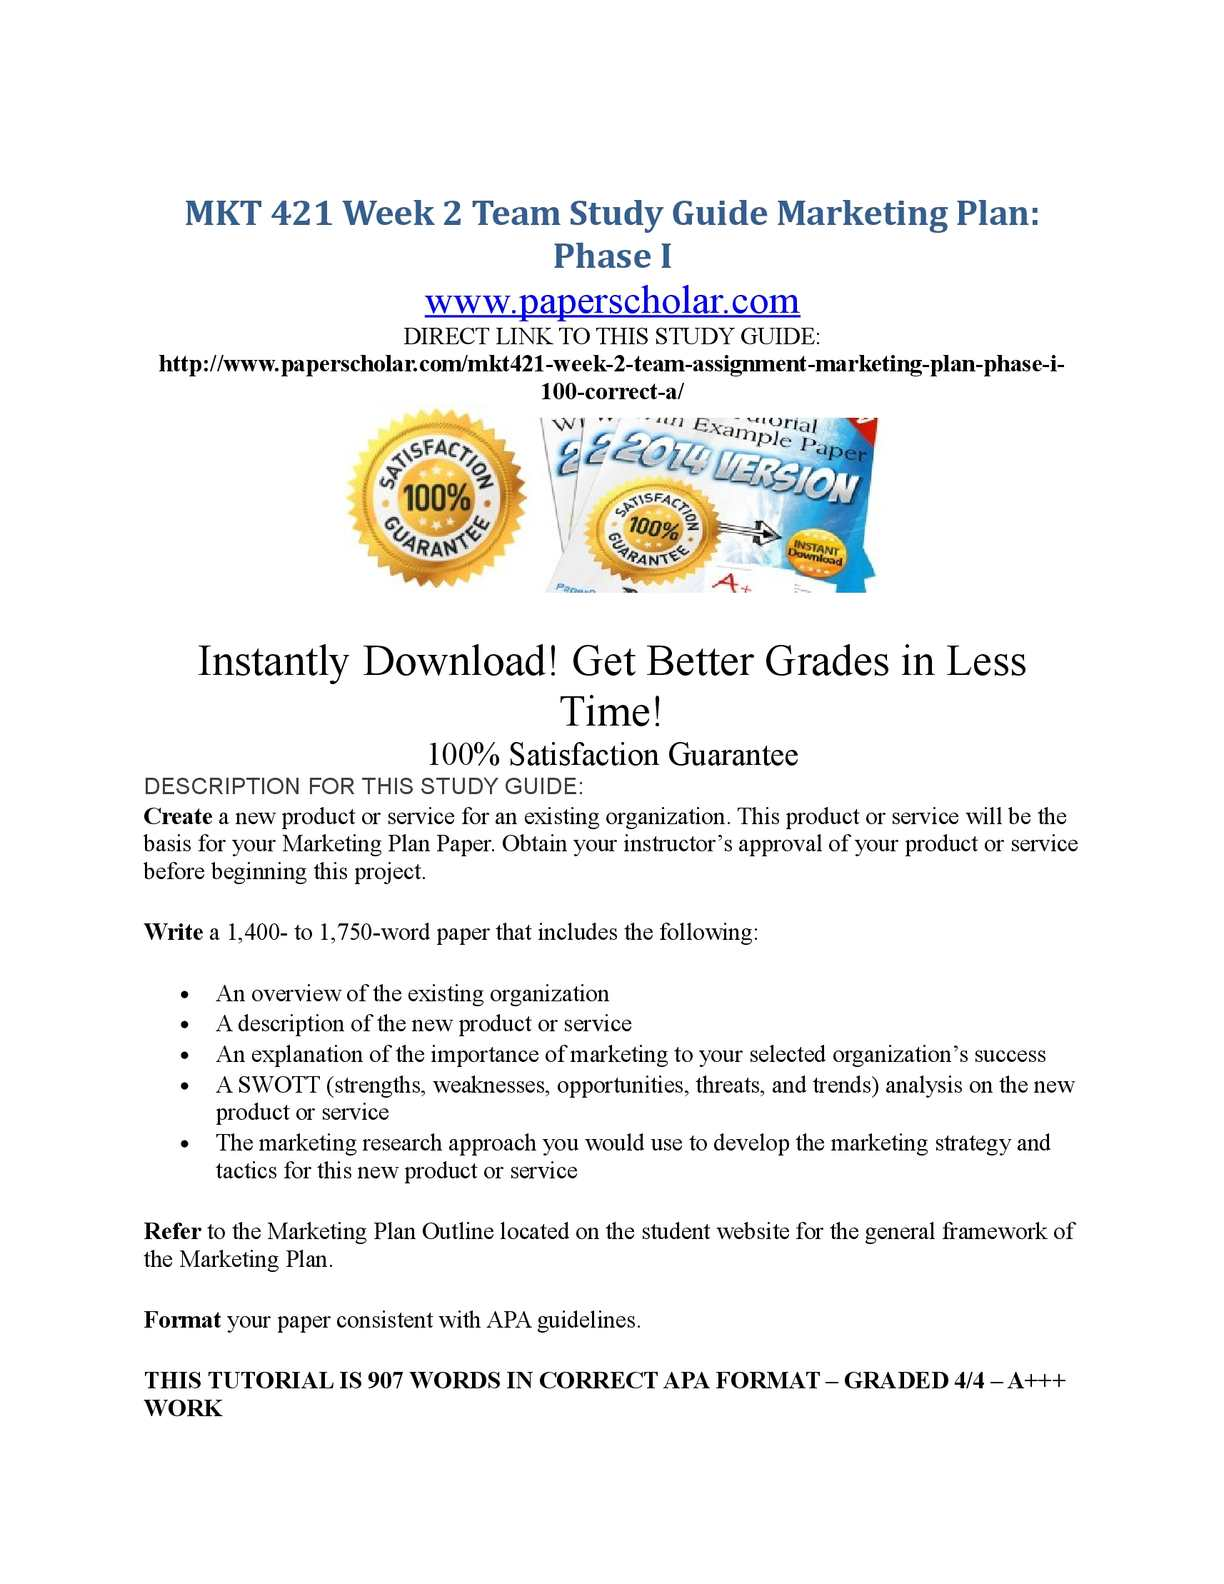 uop mkt 421 marketing plan phase Mkt 421 is a online tutorial store we provides mkt 421 week 4 team assignment marketing plan phase 3.